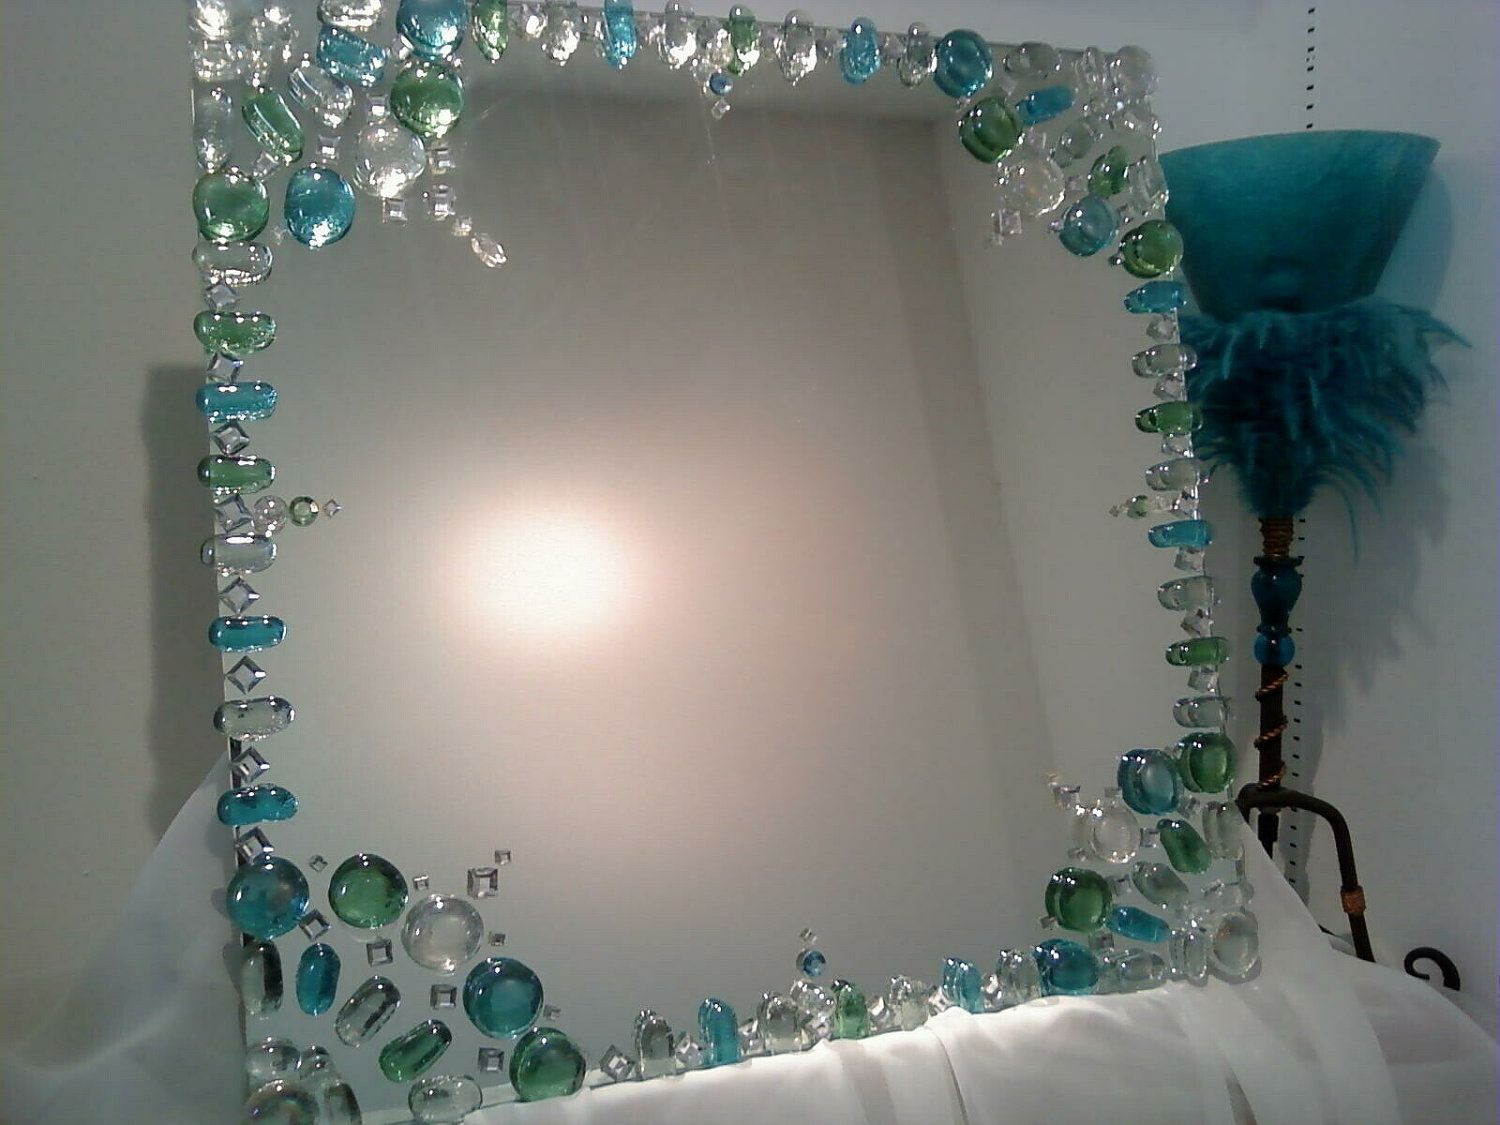 Mirror Design Idea Decorating The Edge With Gems Instead Of Frames